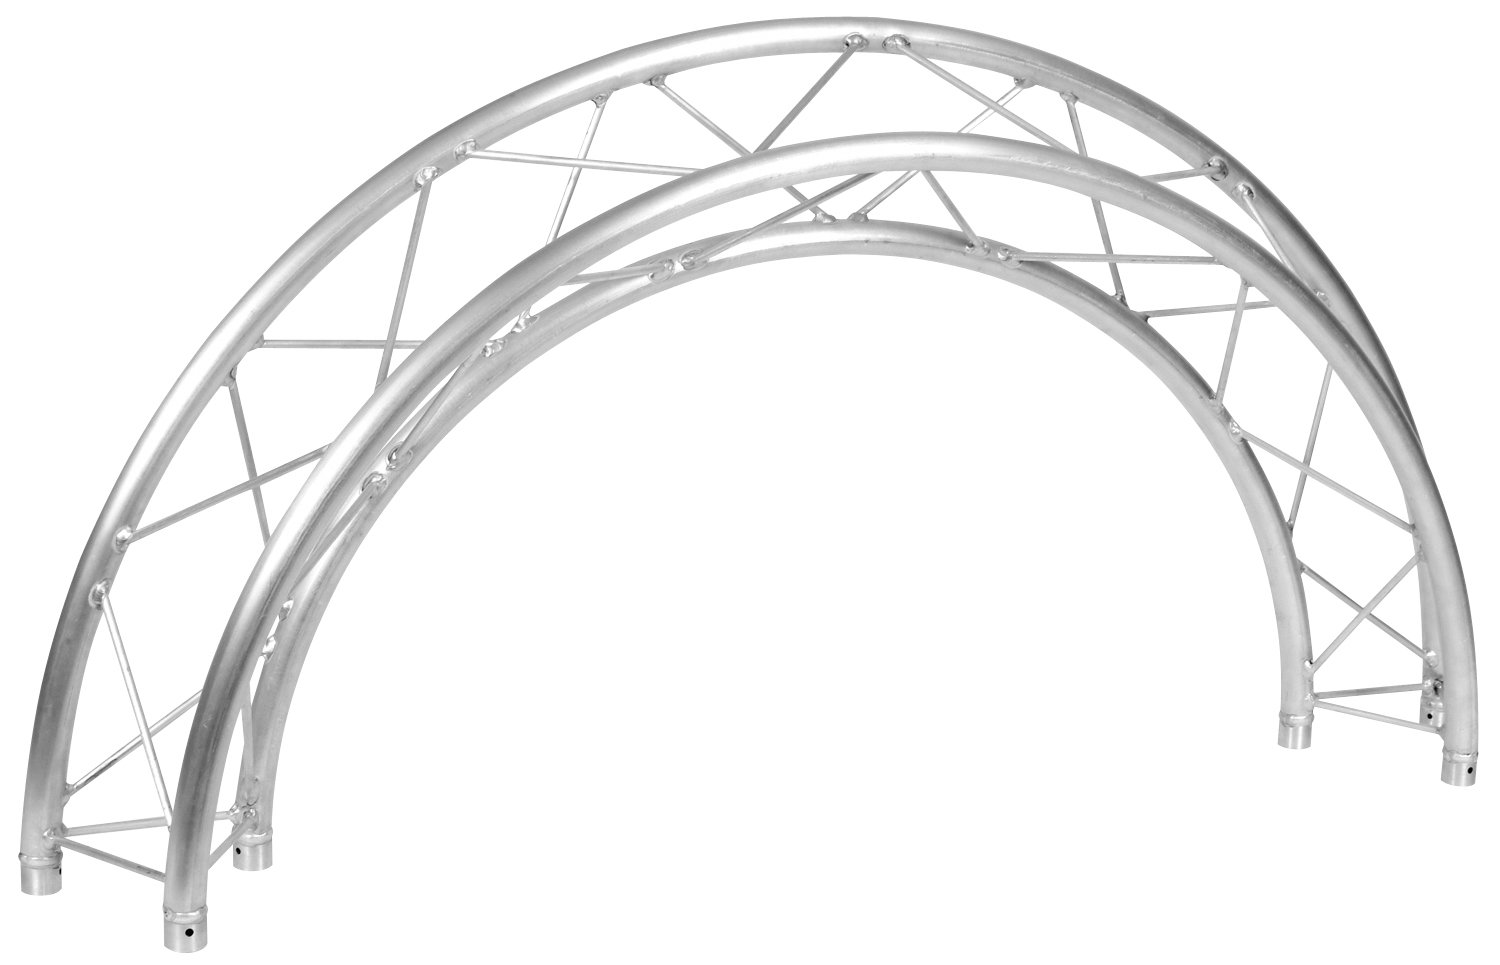 26.24 ft Triangular Circle Truss with (8) 45° Arc Segments